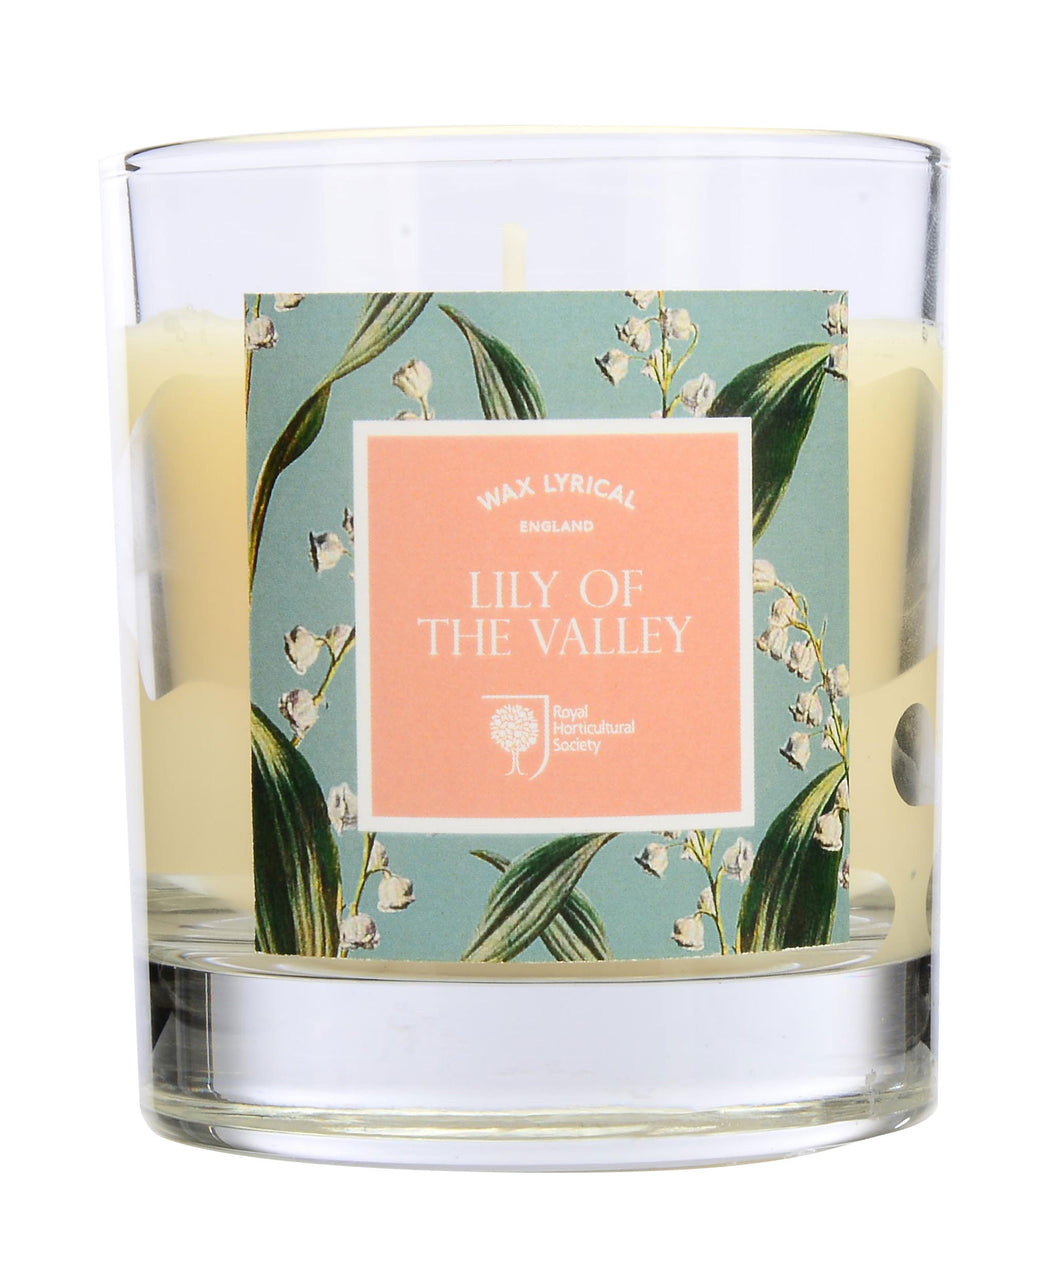 Wax Lyrical RHS Fragrant Garden Fragranced Candle Lily of the Valley - LAST FEW AVAILABLE!